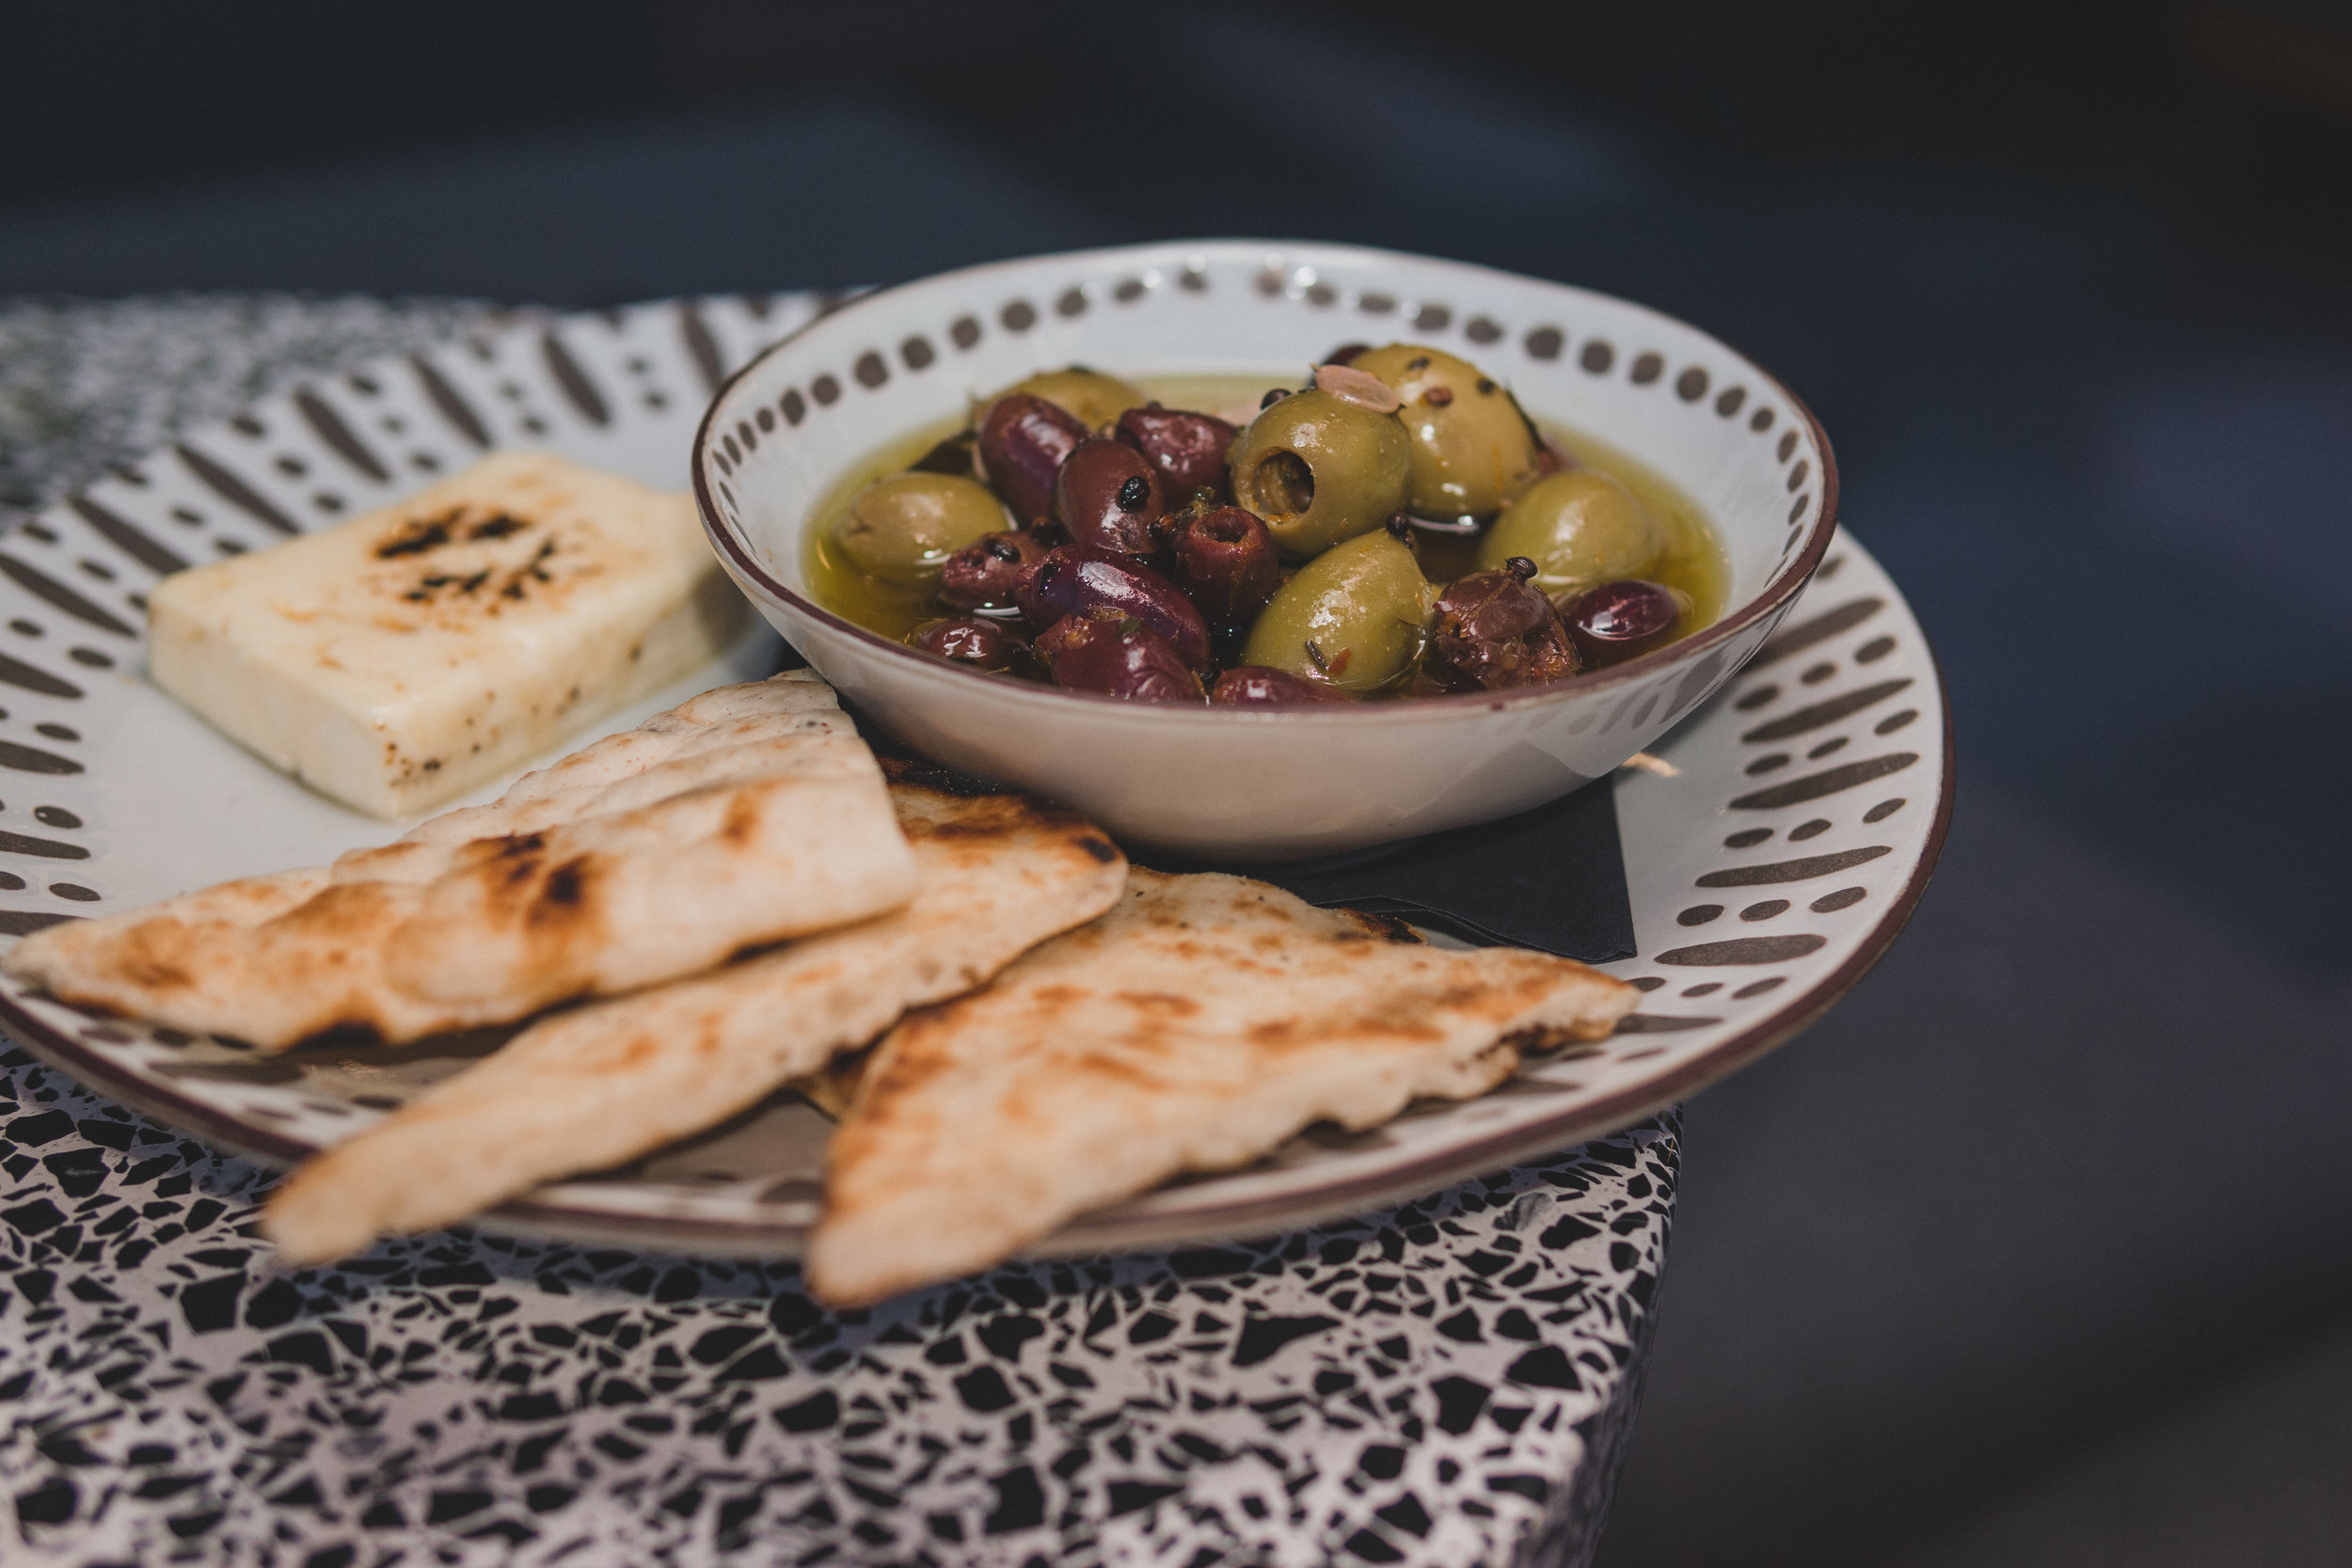 Warm Marinated Olives: Served with grilled naan & feta cheese